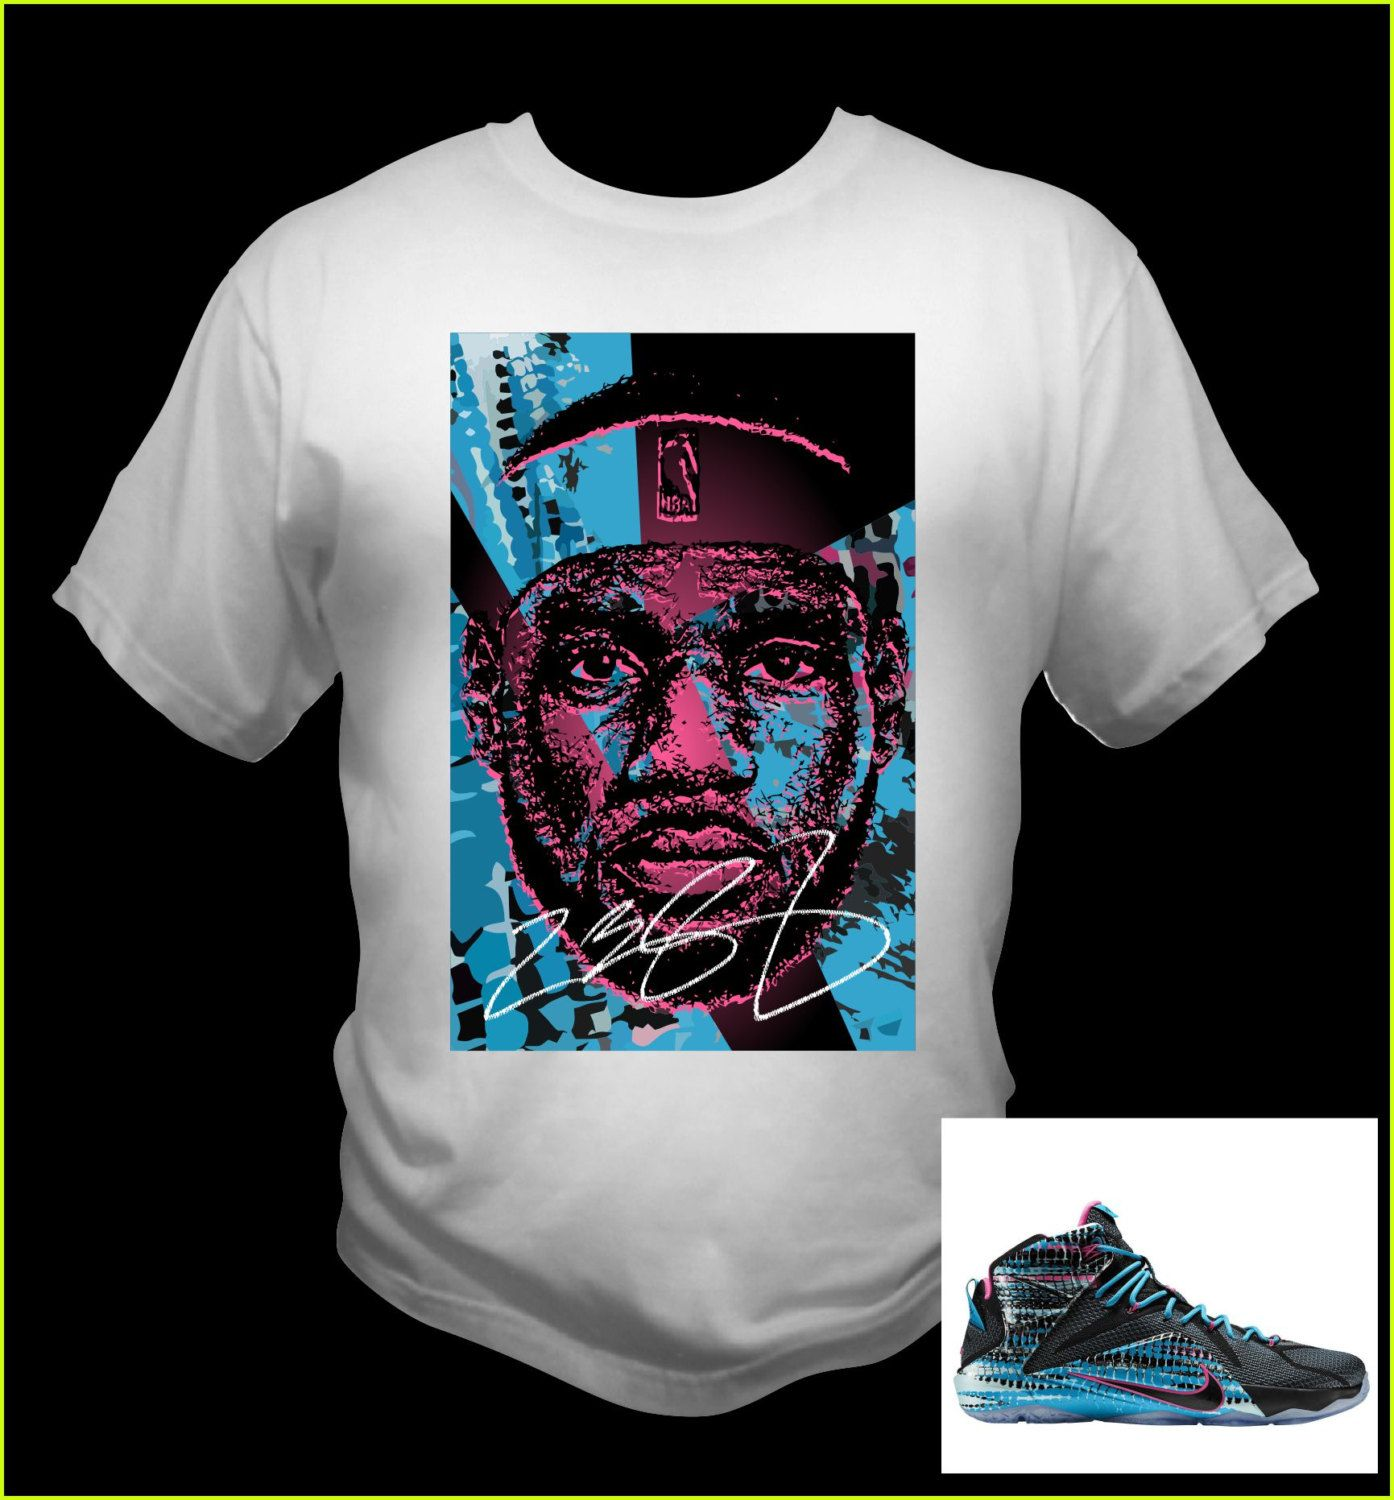 afa24e147 Lebron James 12 White T-Shirt Black/Pink Pow/Blue Lagoon Theme Made to  Match Shoes by NuelifeGraphics on Etsy